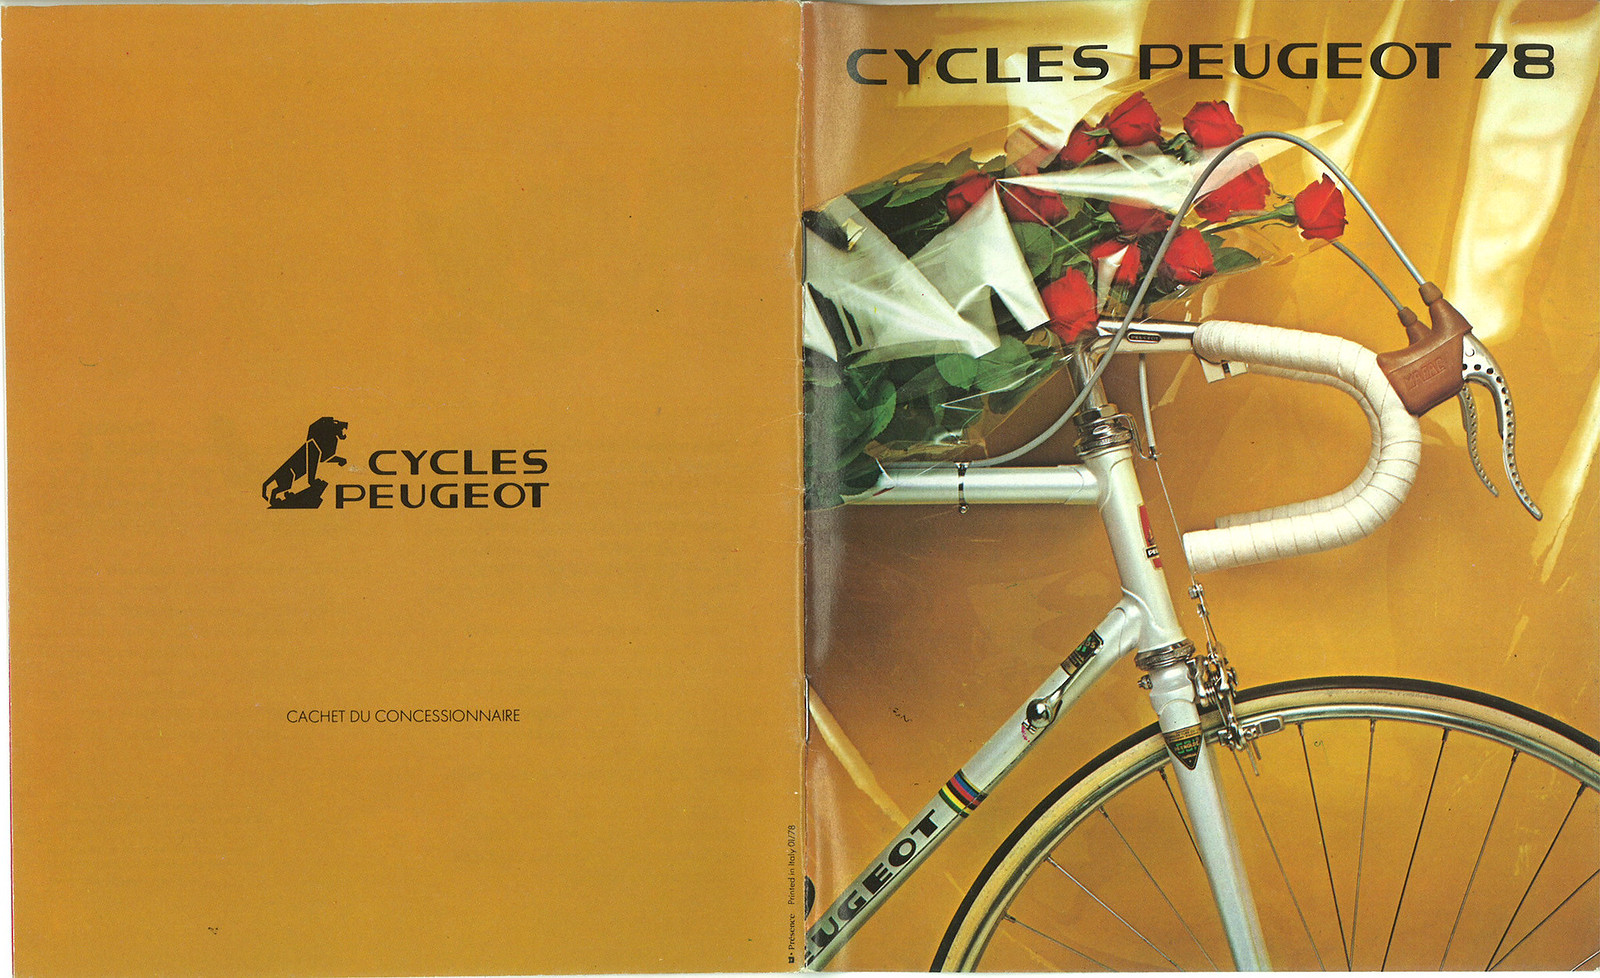 catalogue cycles peugeot 1978 | flickr